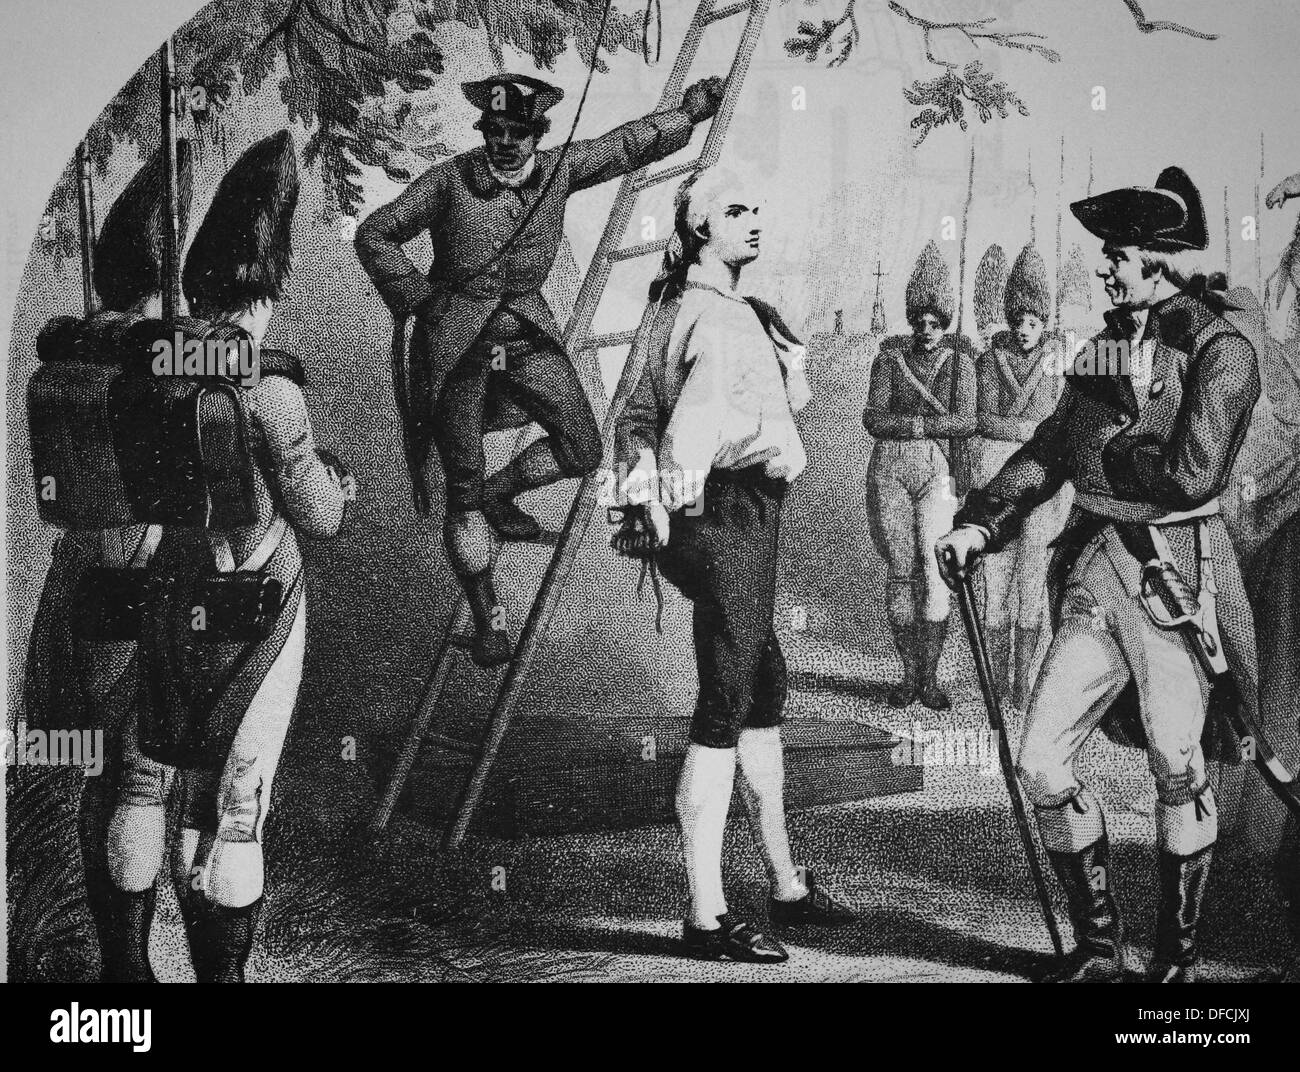 Nathan Hale (1755 – 1776) Soldier for the Continental Army during the American Revolutionary War. Engraving. - Stock Image